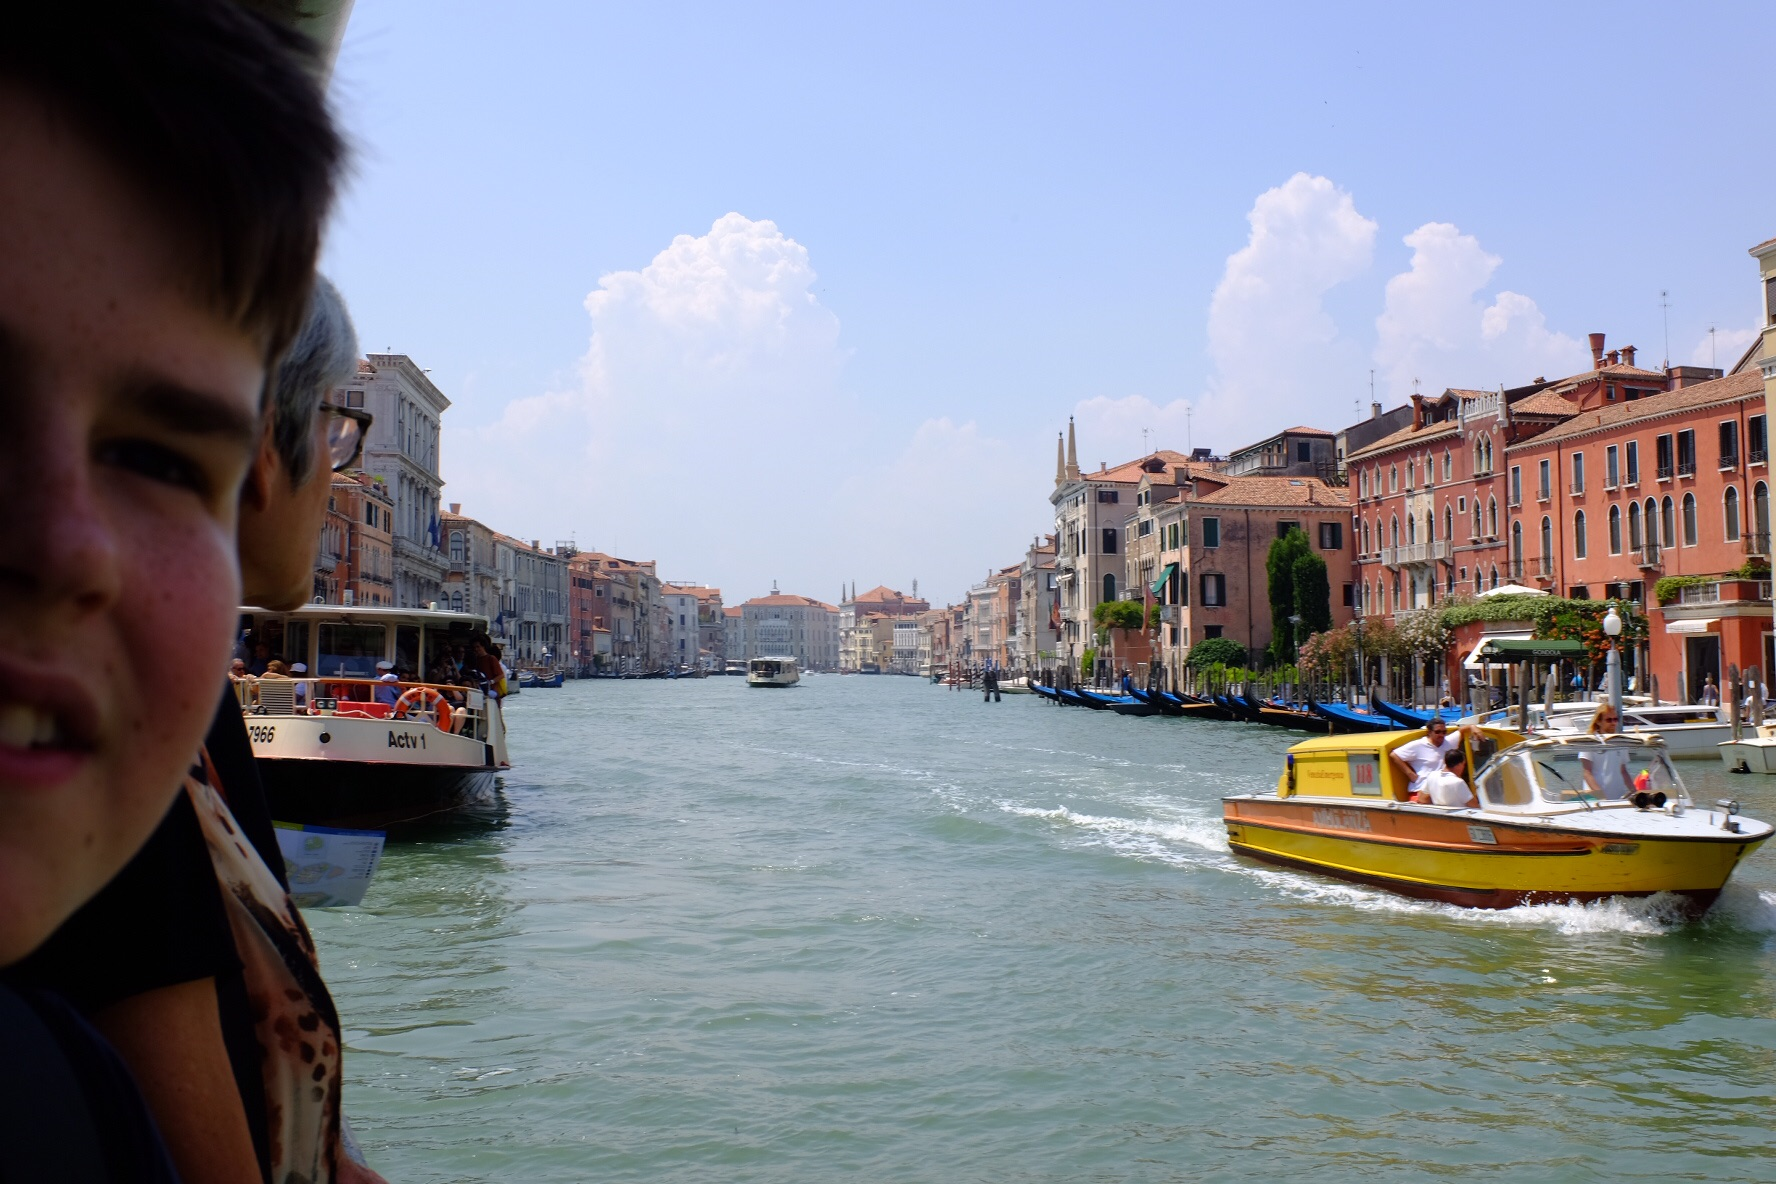 Hard to take a bad photo in Venice